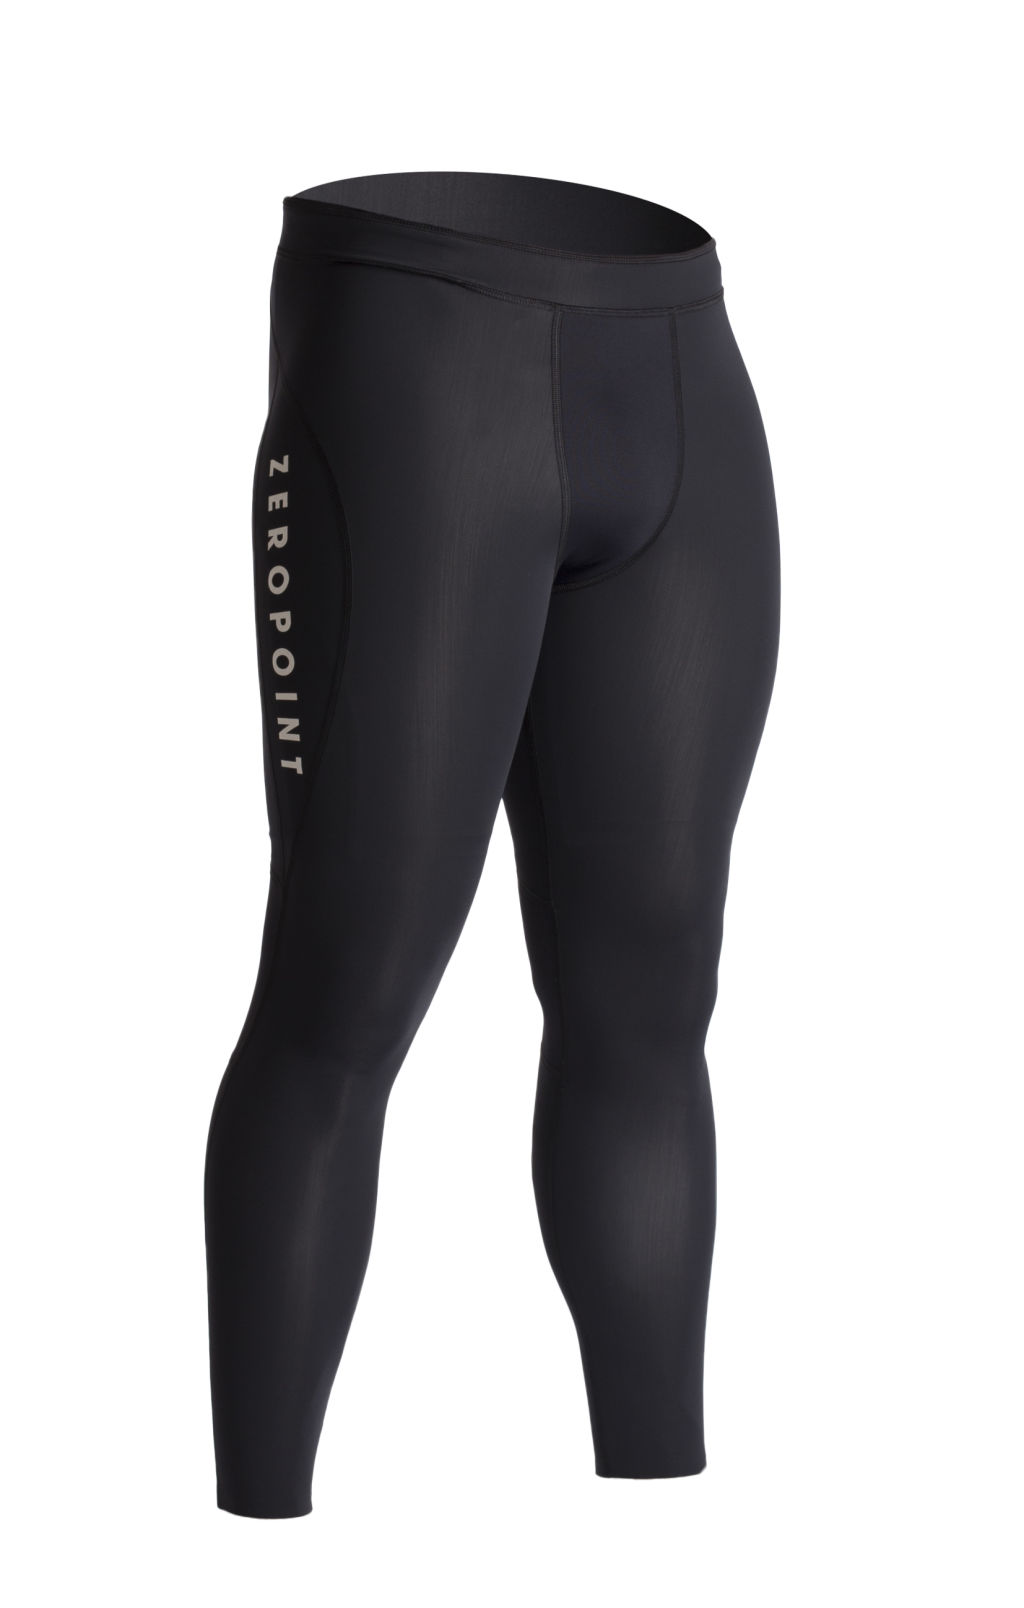 Zeropoint Athletic Compression Tights M